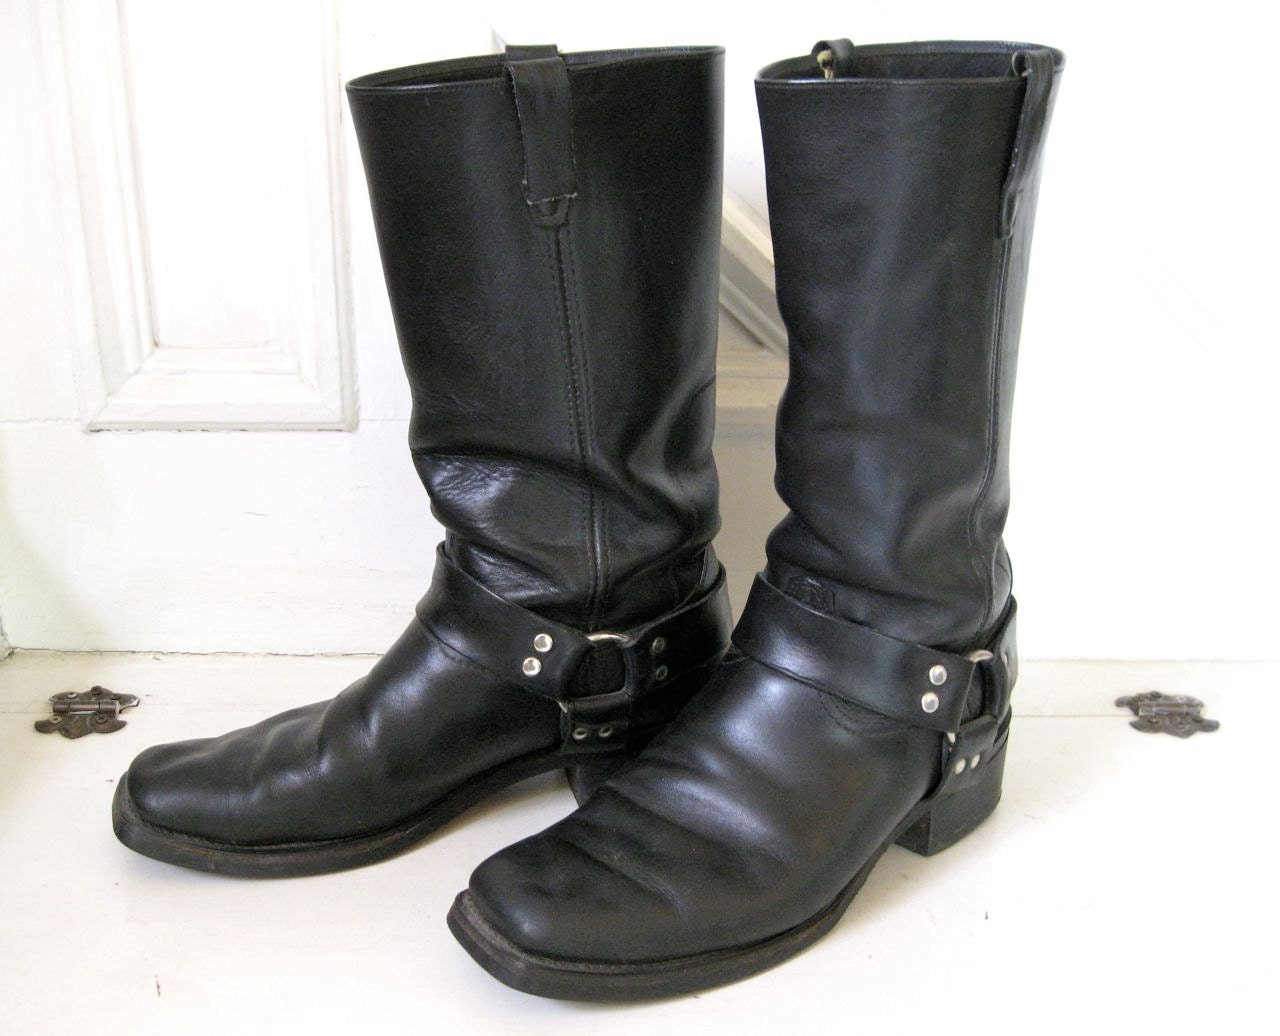 Vintage Motorcycle Boots Mens Black Leather Size 11 By